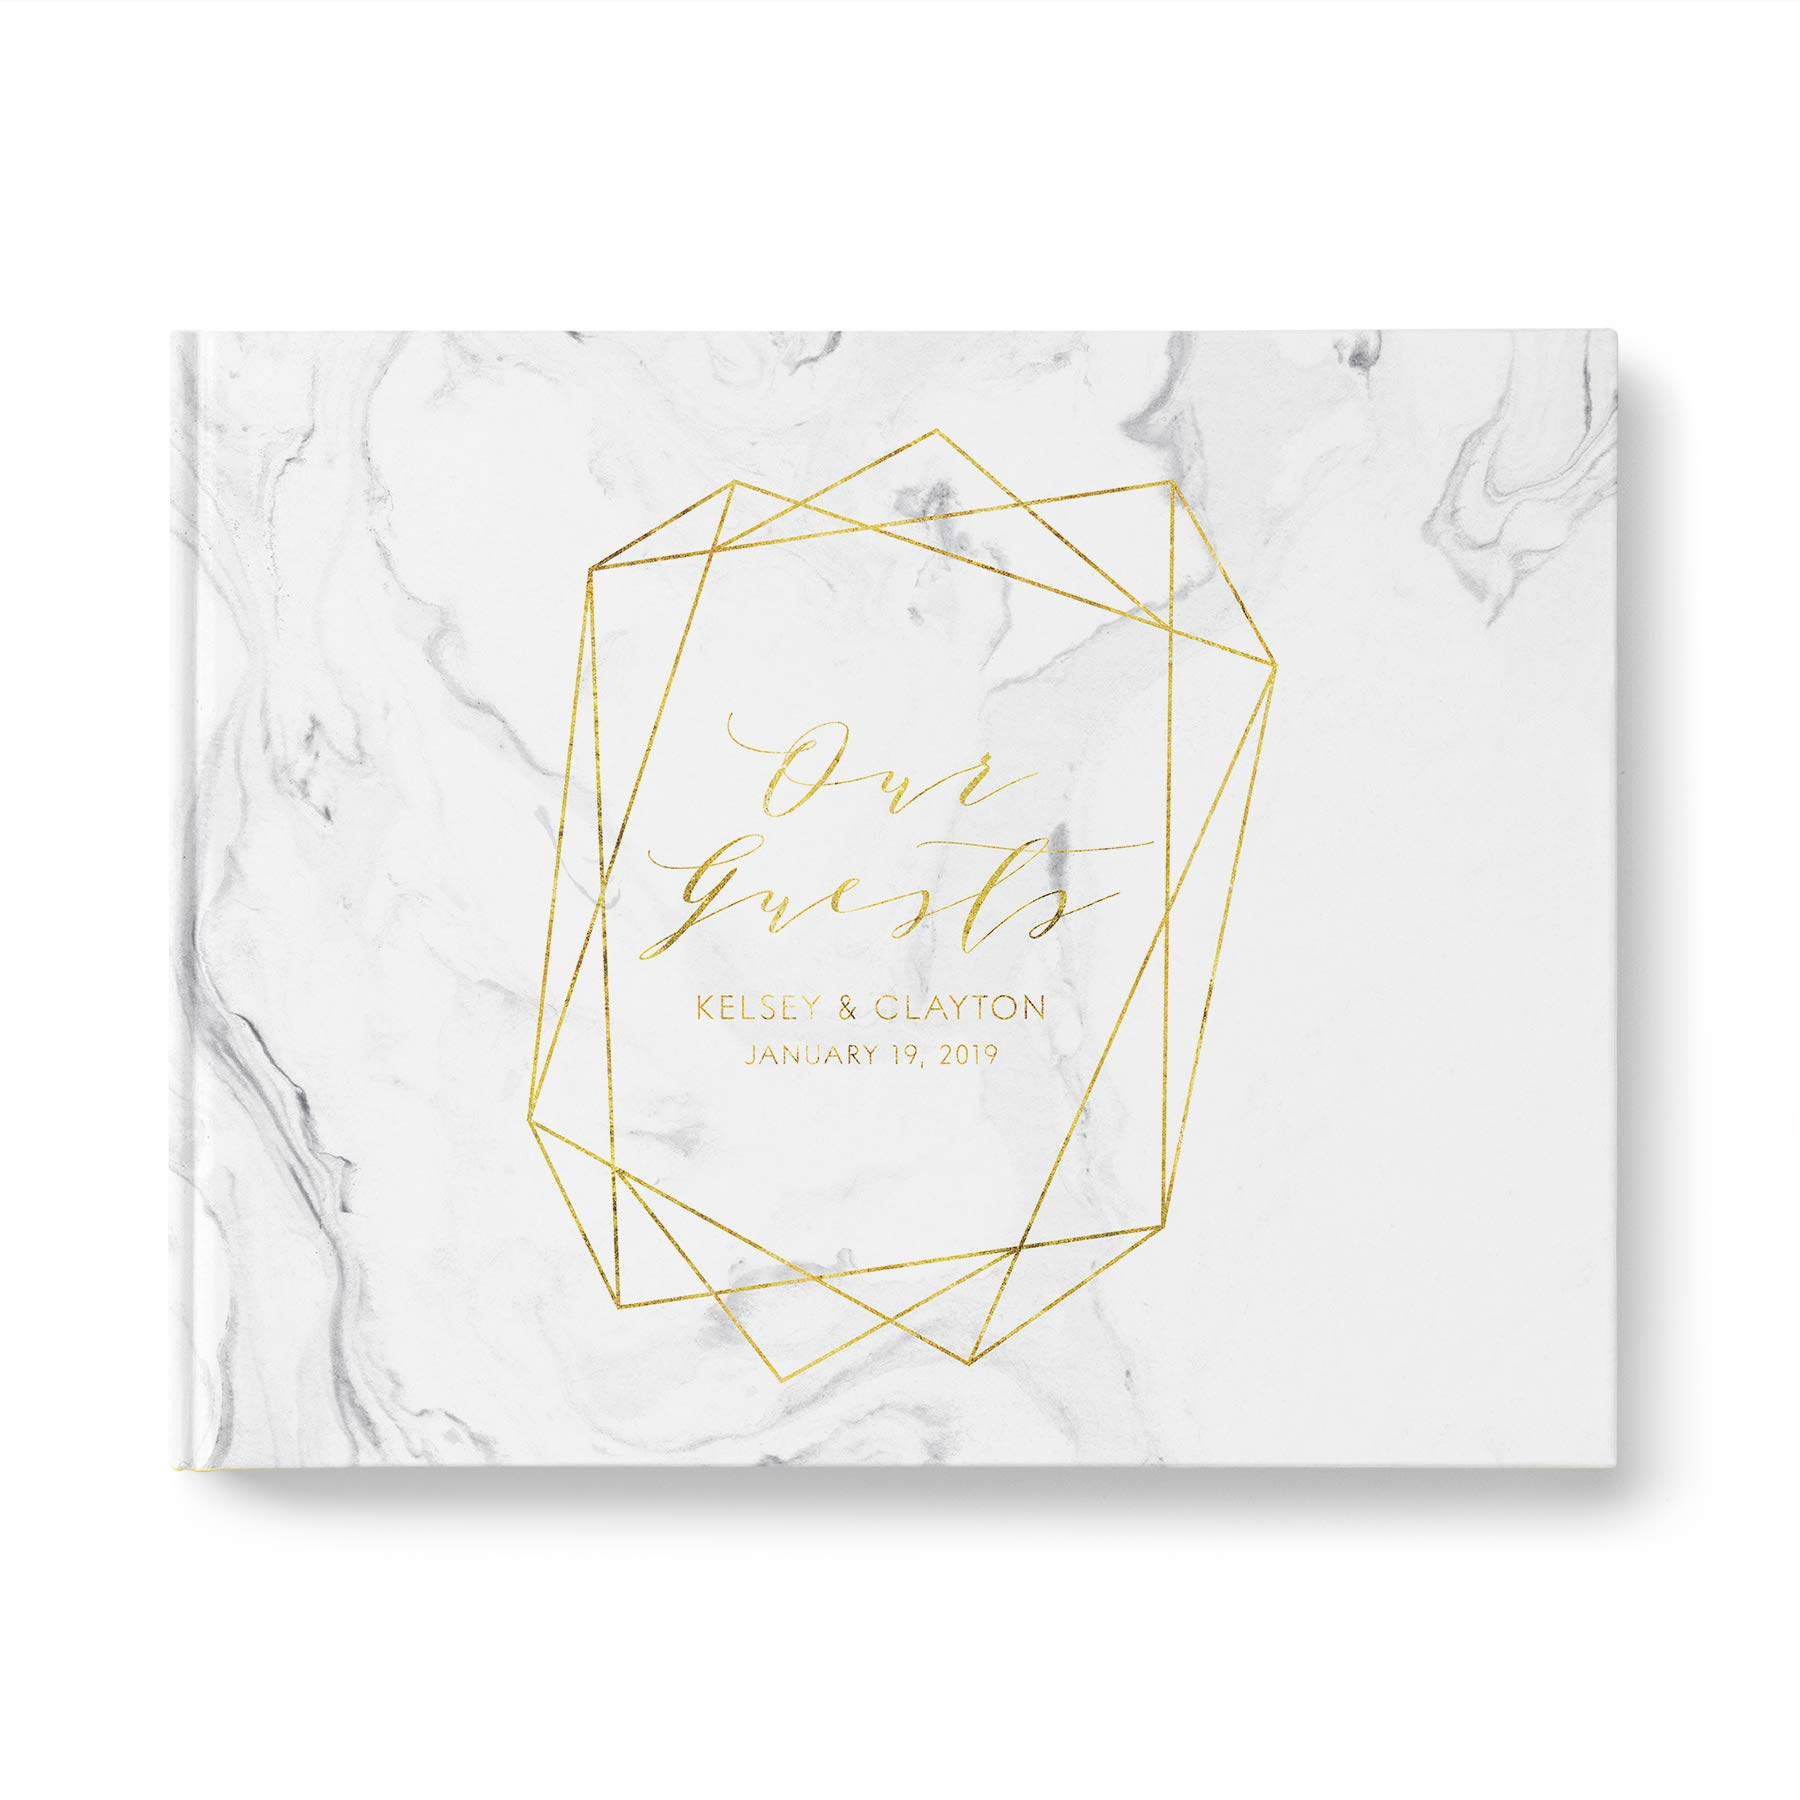 Marble Wedding Guest Book with Gold Foil Text, Blank White Pages, Casebound Hardcover, Landscape 10.9 x 8.75 inch, 40 Acid-Free Sheets (80 Pages Total)